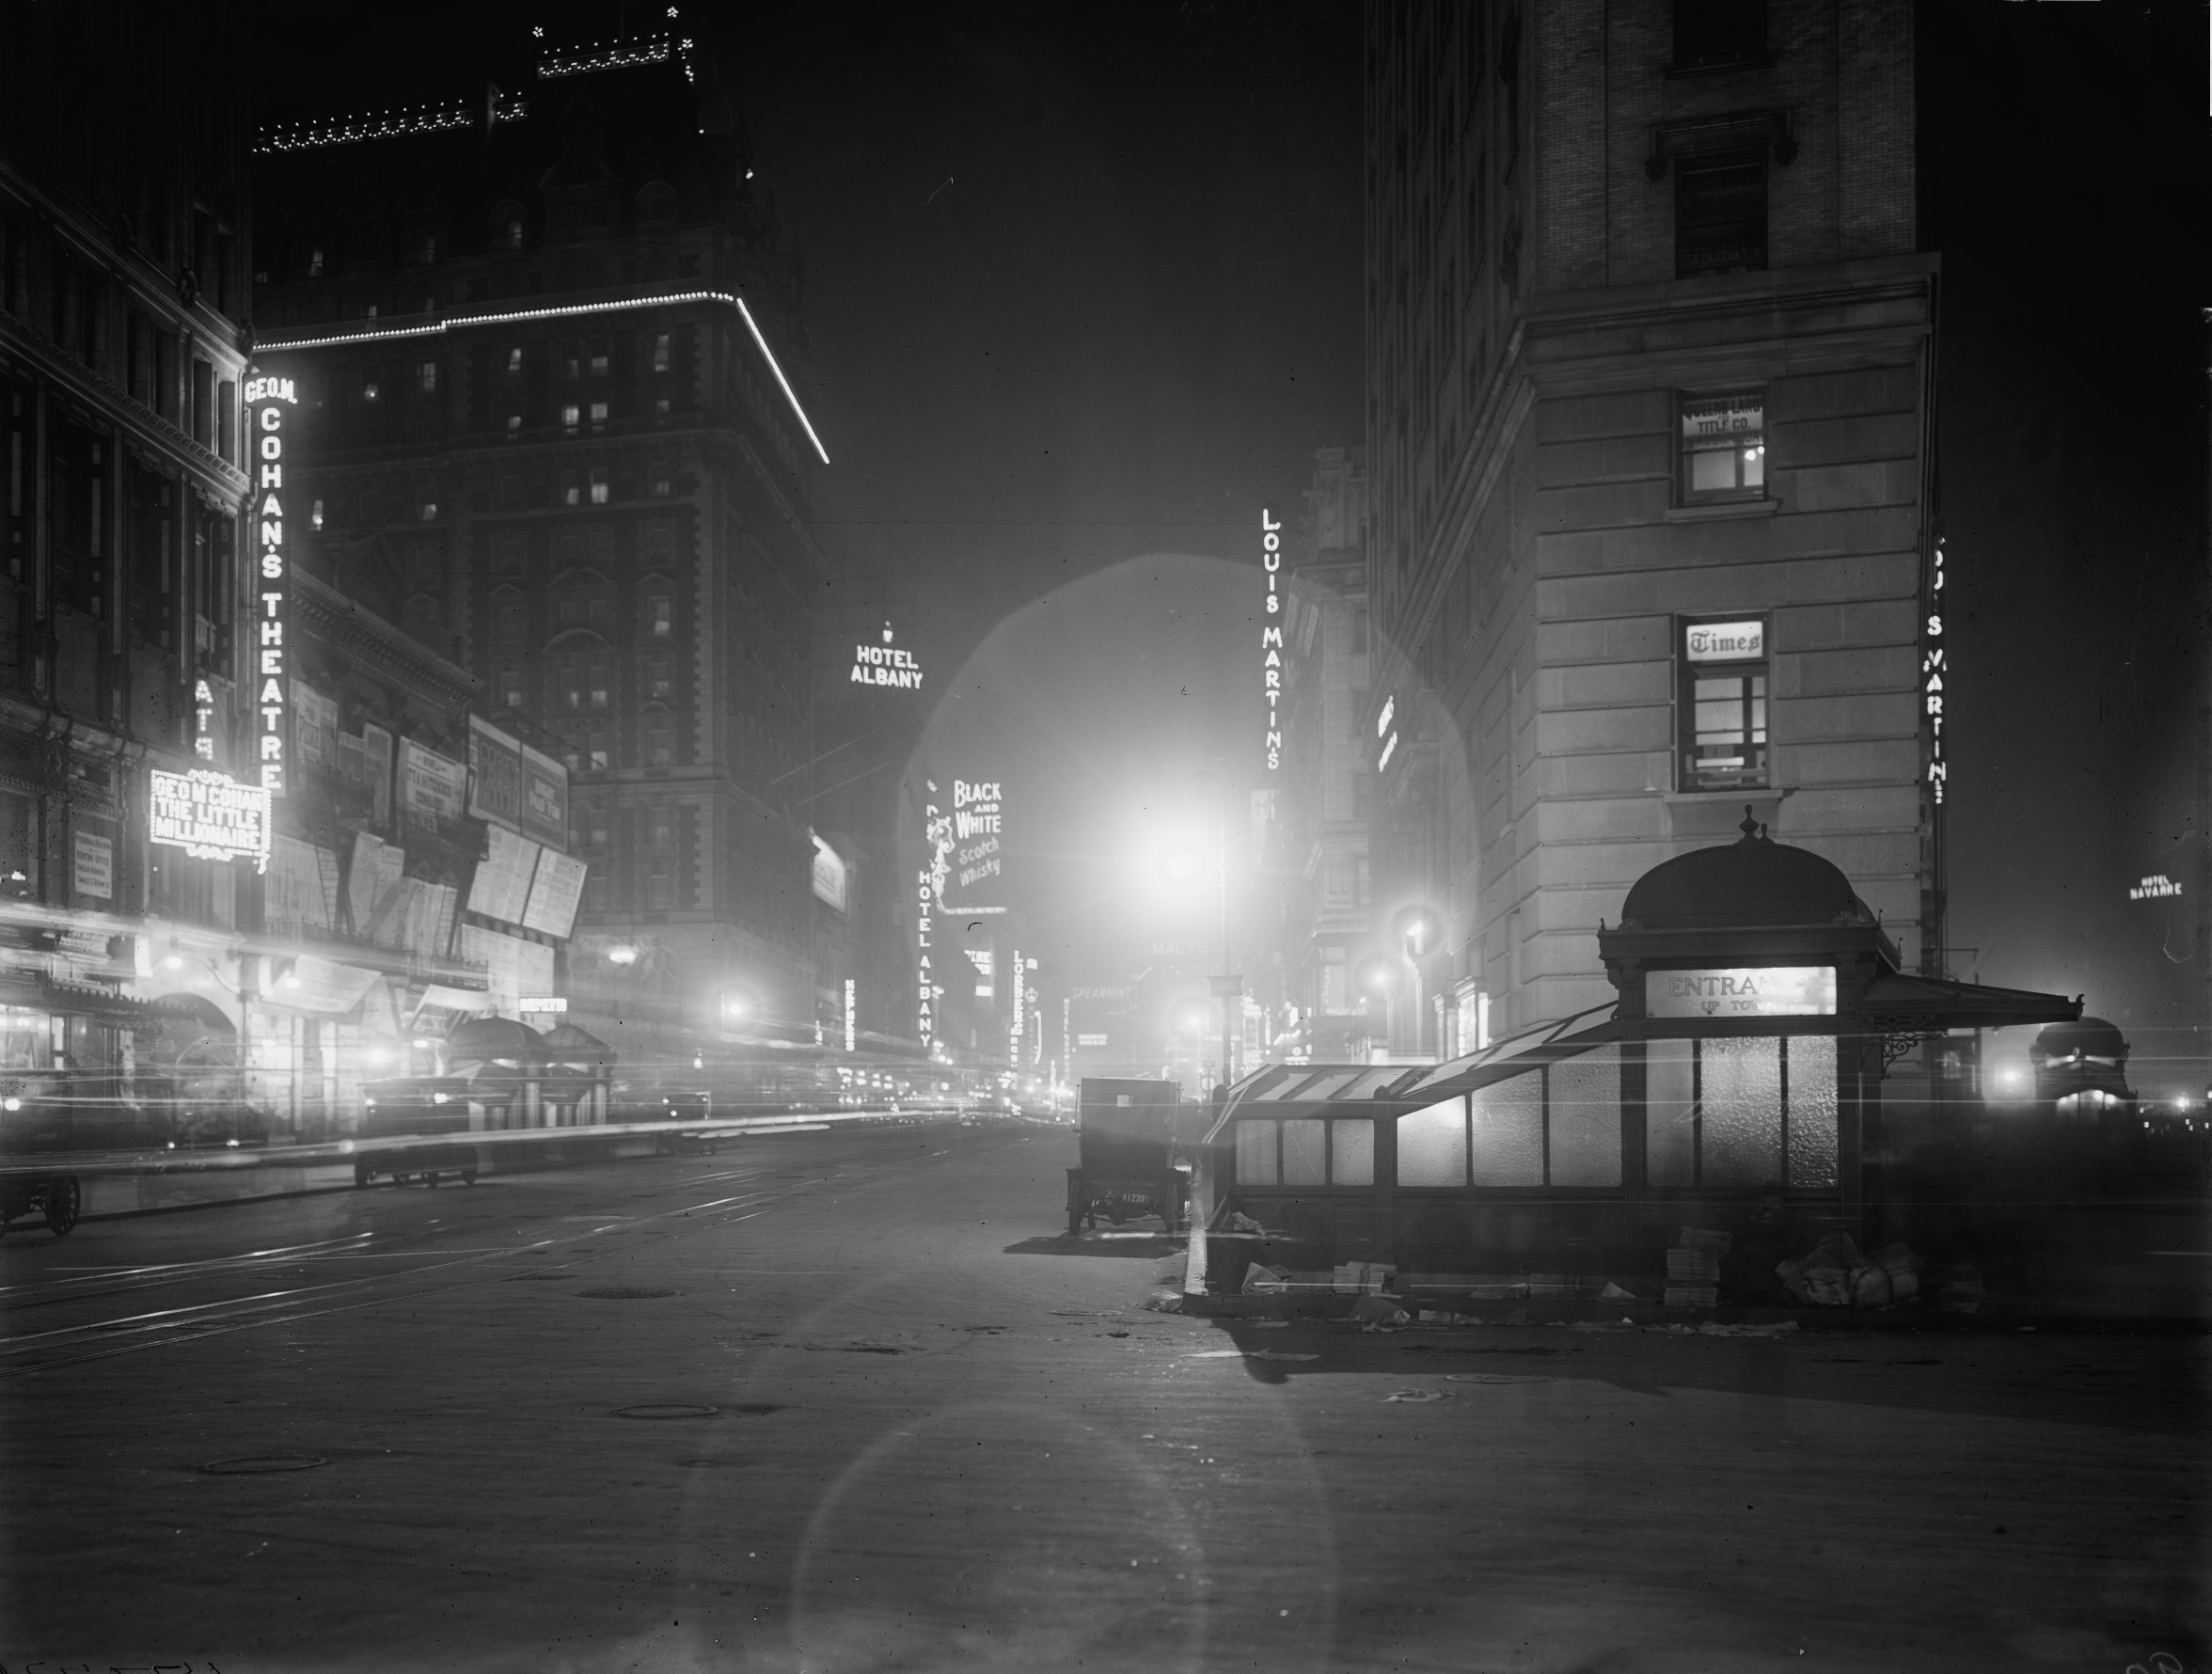 Old New York In Photos #61 - Times Square & Broadway at Night - 1911